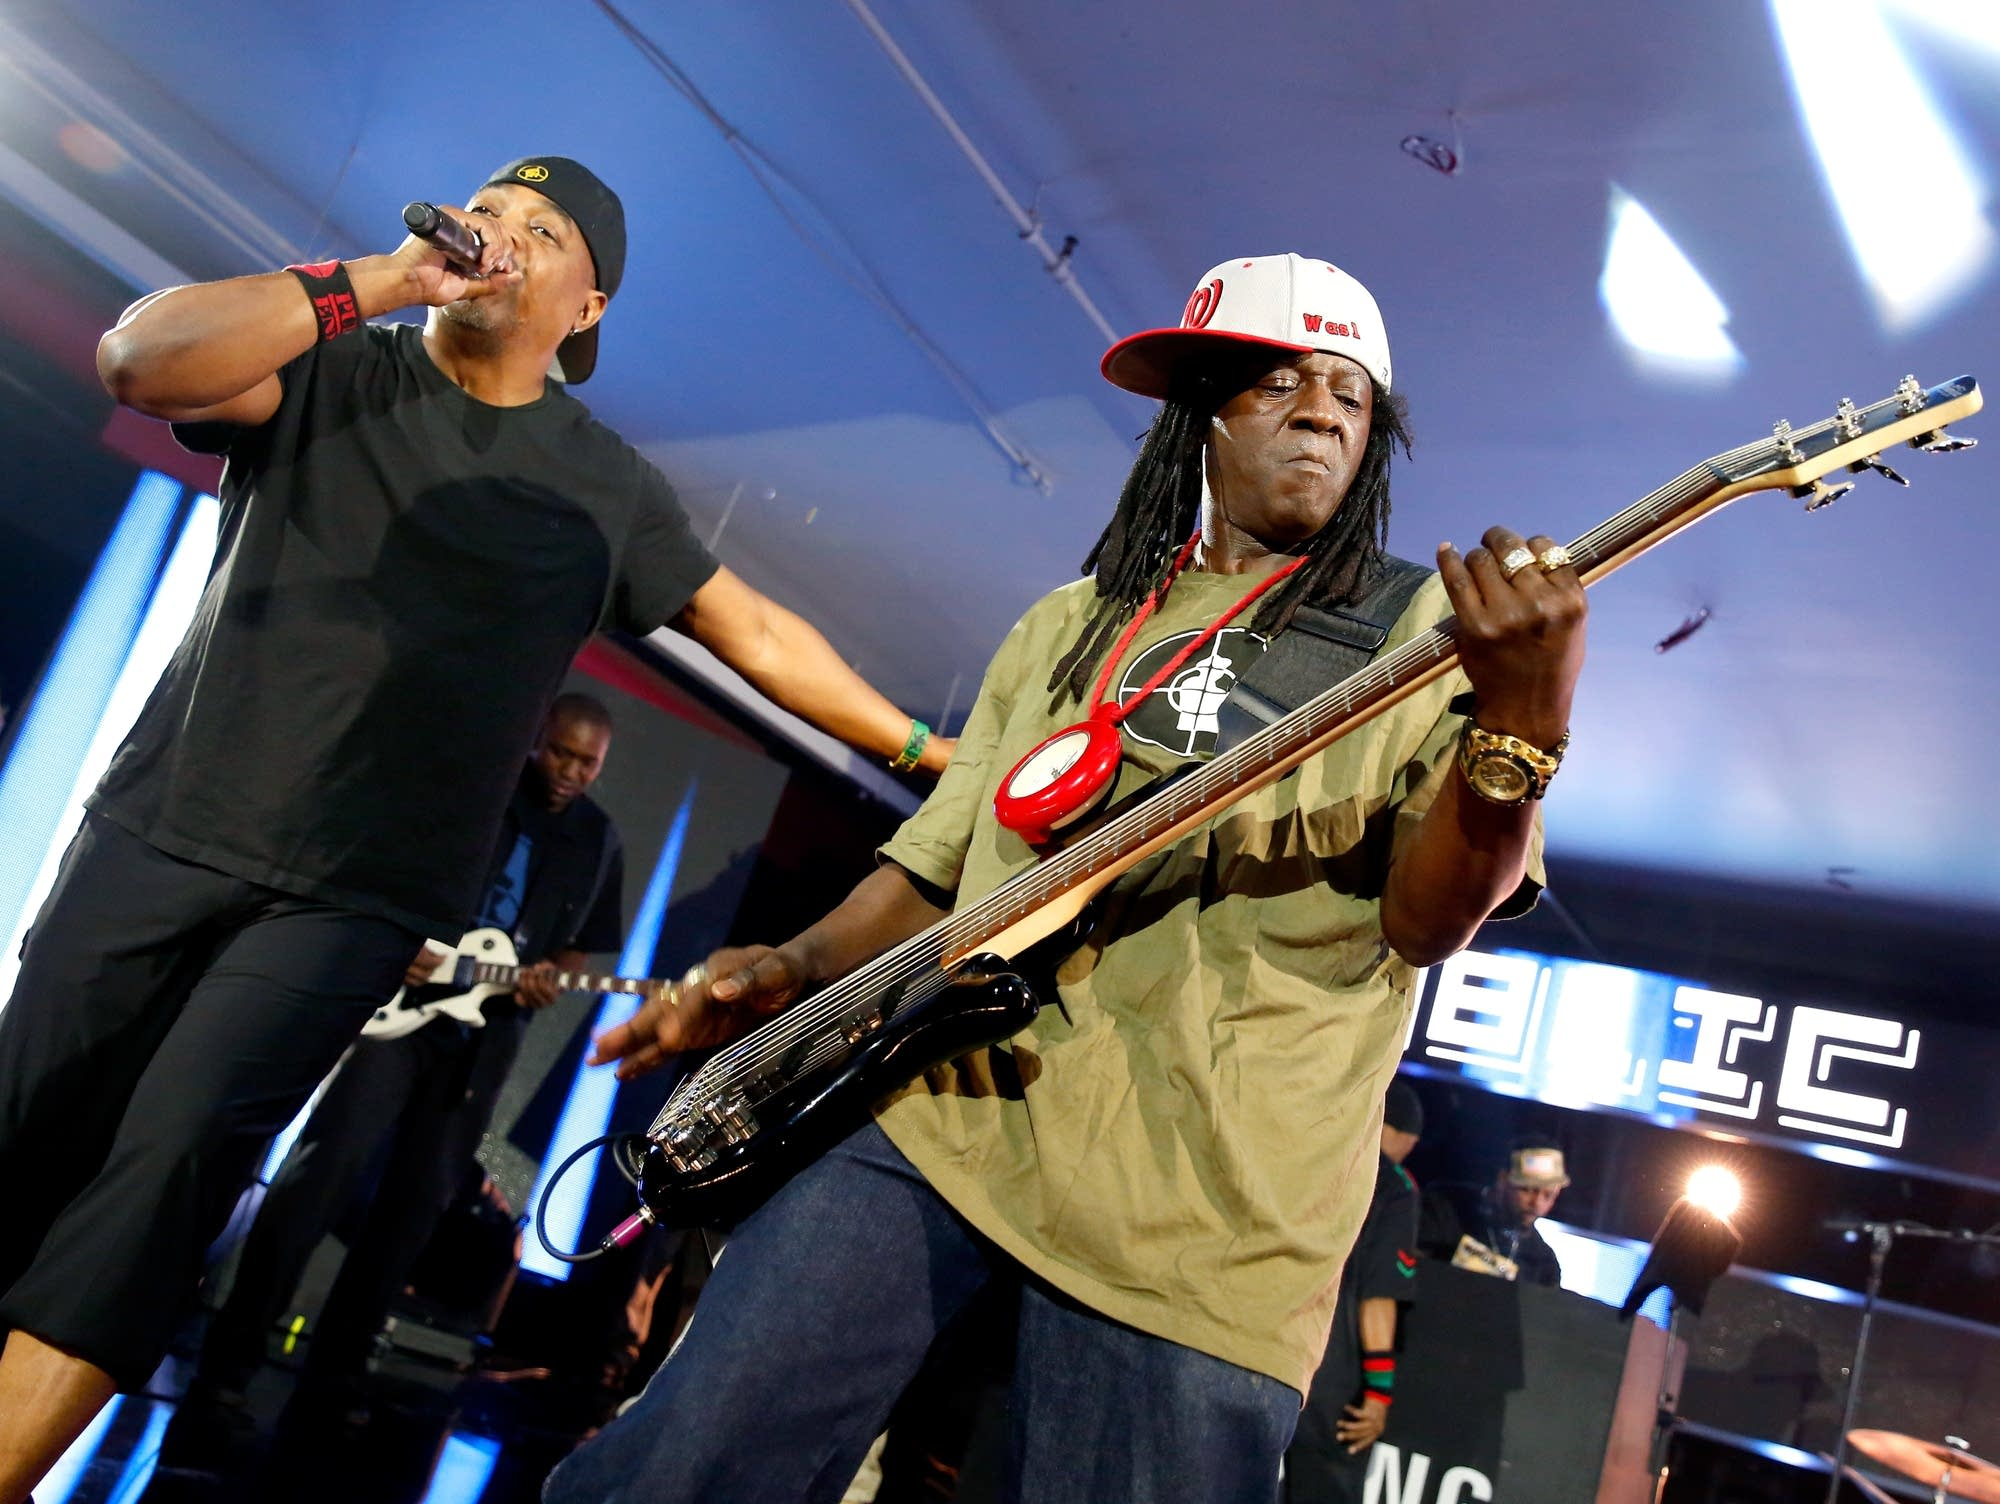 Chuck D and Flavor Flav of Public Enemy perform at SXSW in 2016.